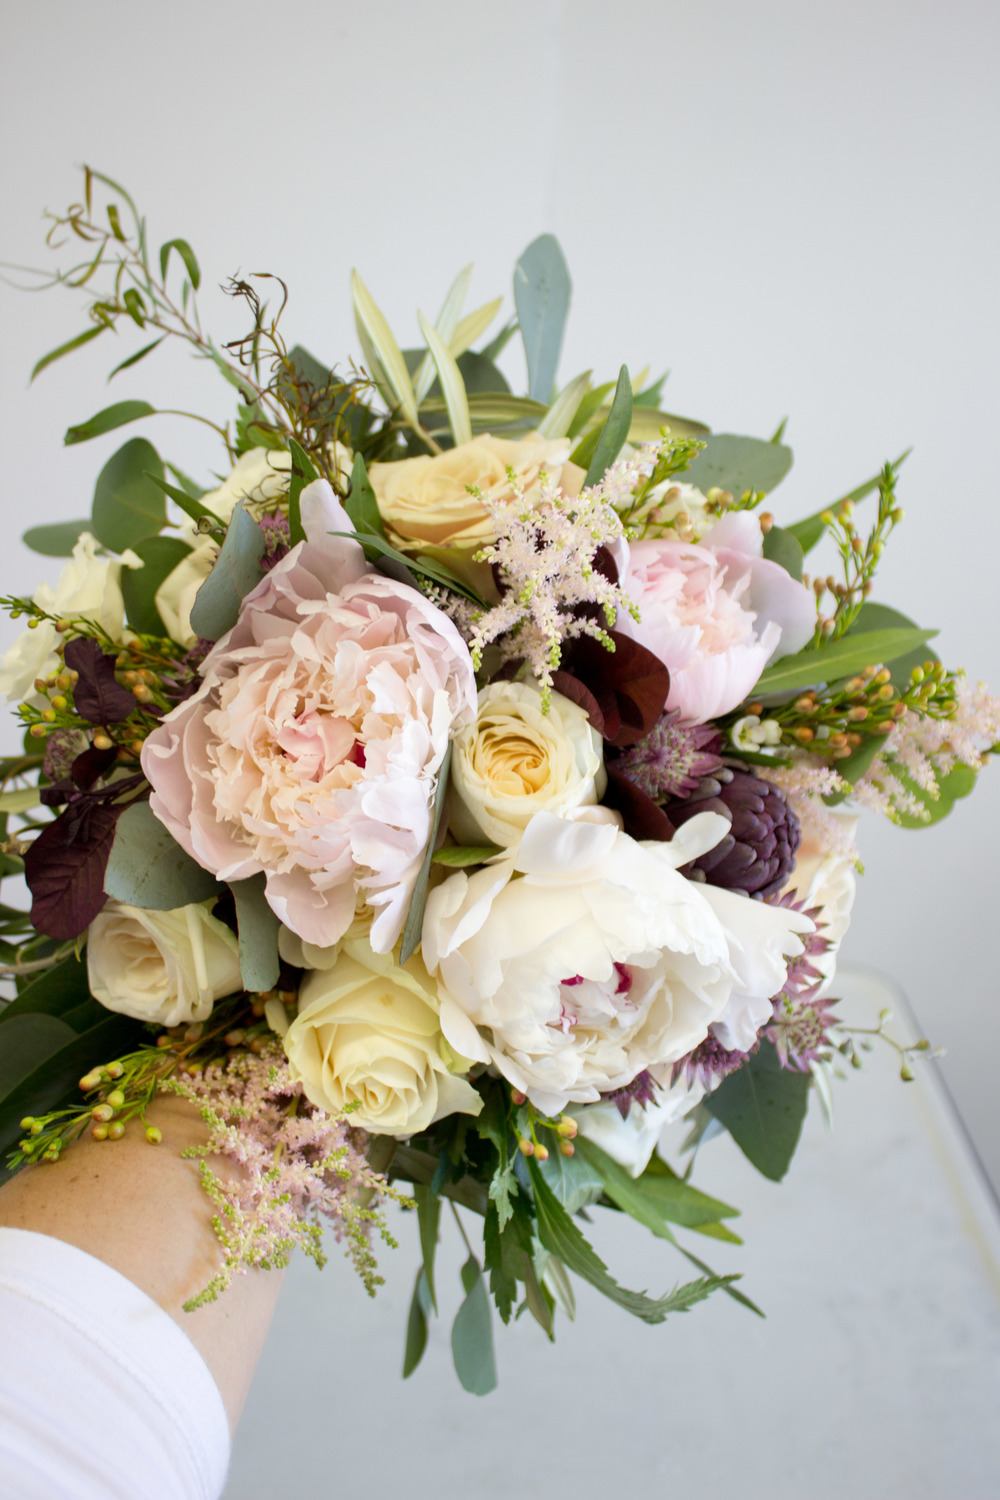 Bridal Bouquet with Peonies, Garden Rose, Artichoke, Waxflower, Astilbe, Astrantia, and Various Greenery